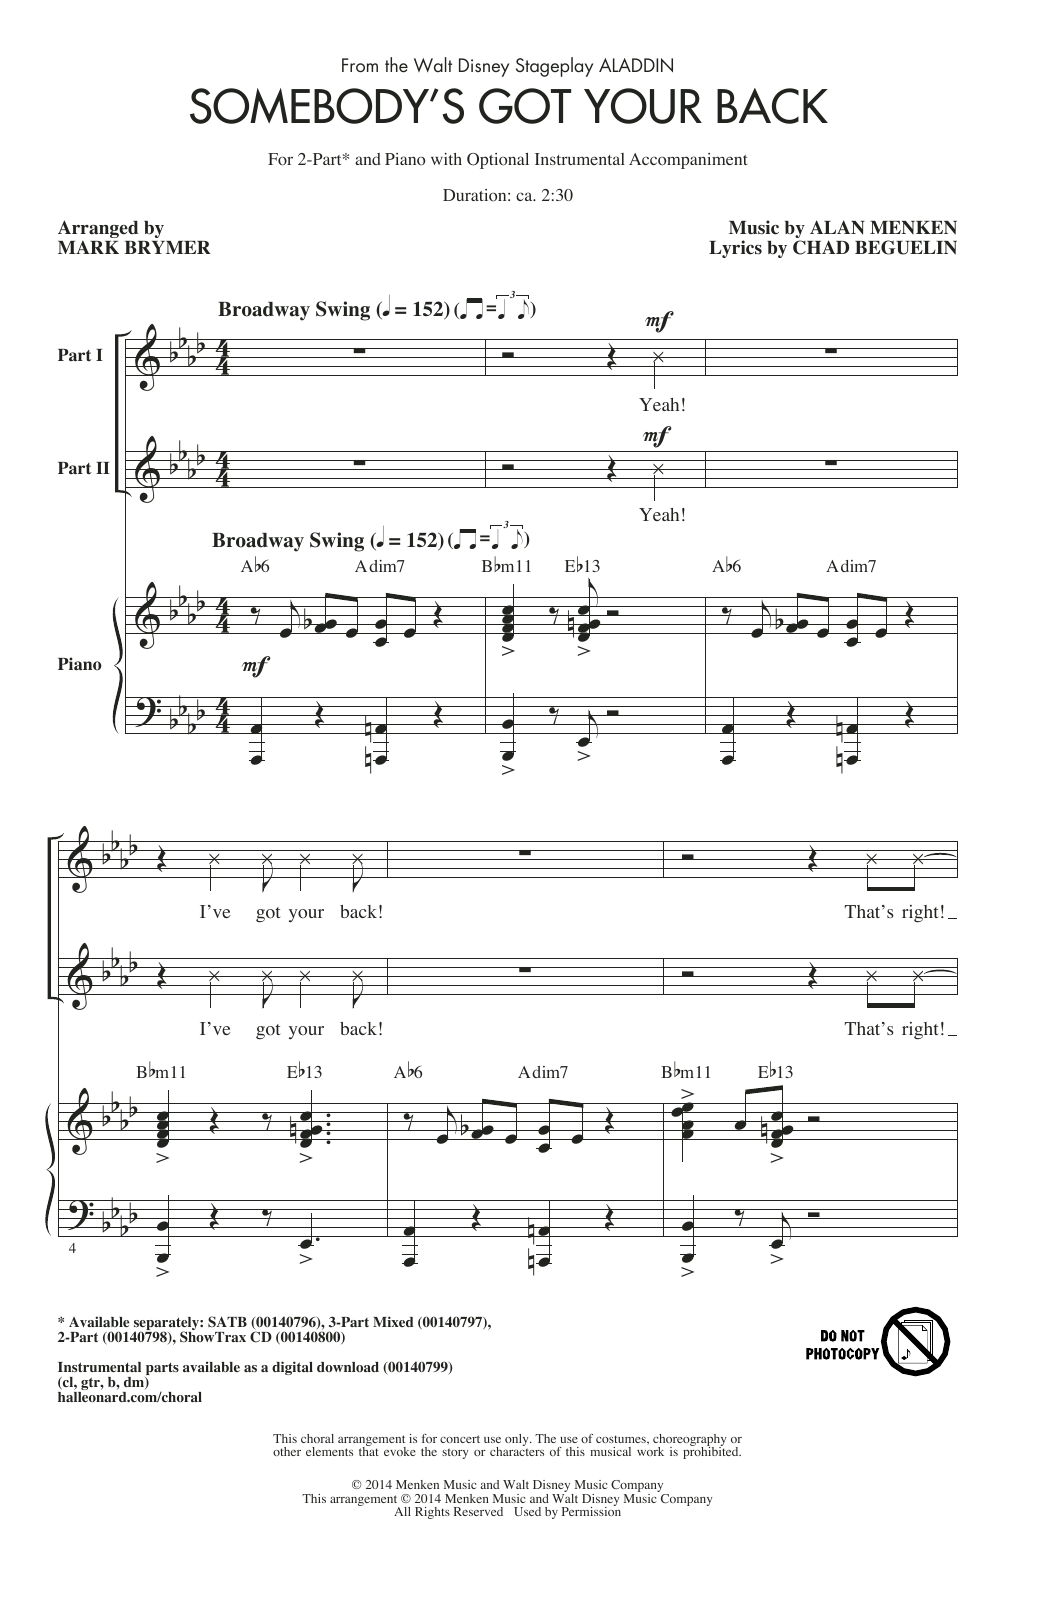 Download Mark Brymer 'Somebody's Got Your Back' Digital Sheet Music Notes & Chords and start playing in minutes